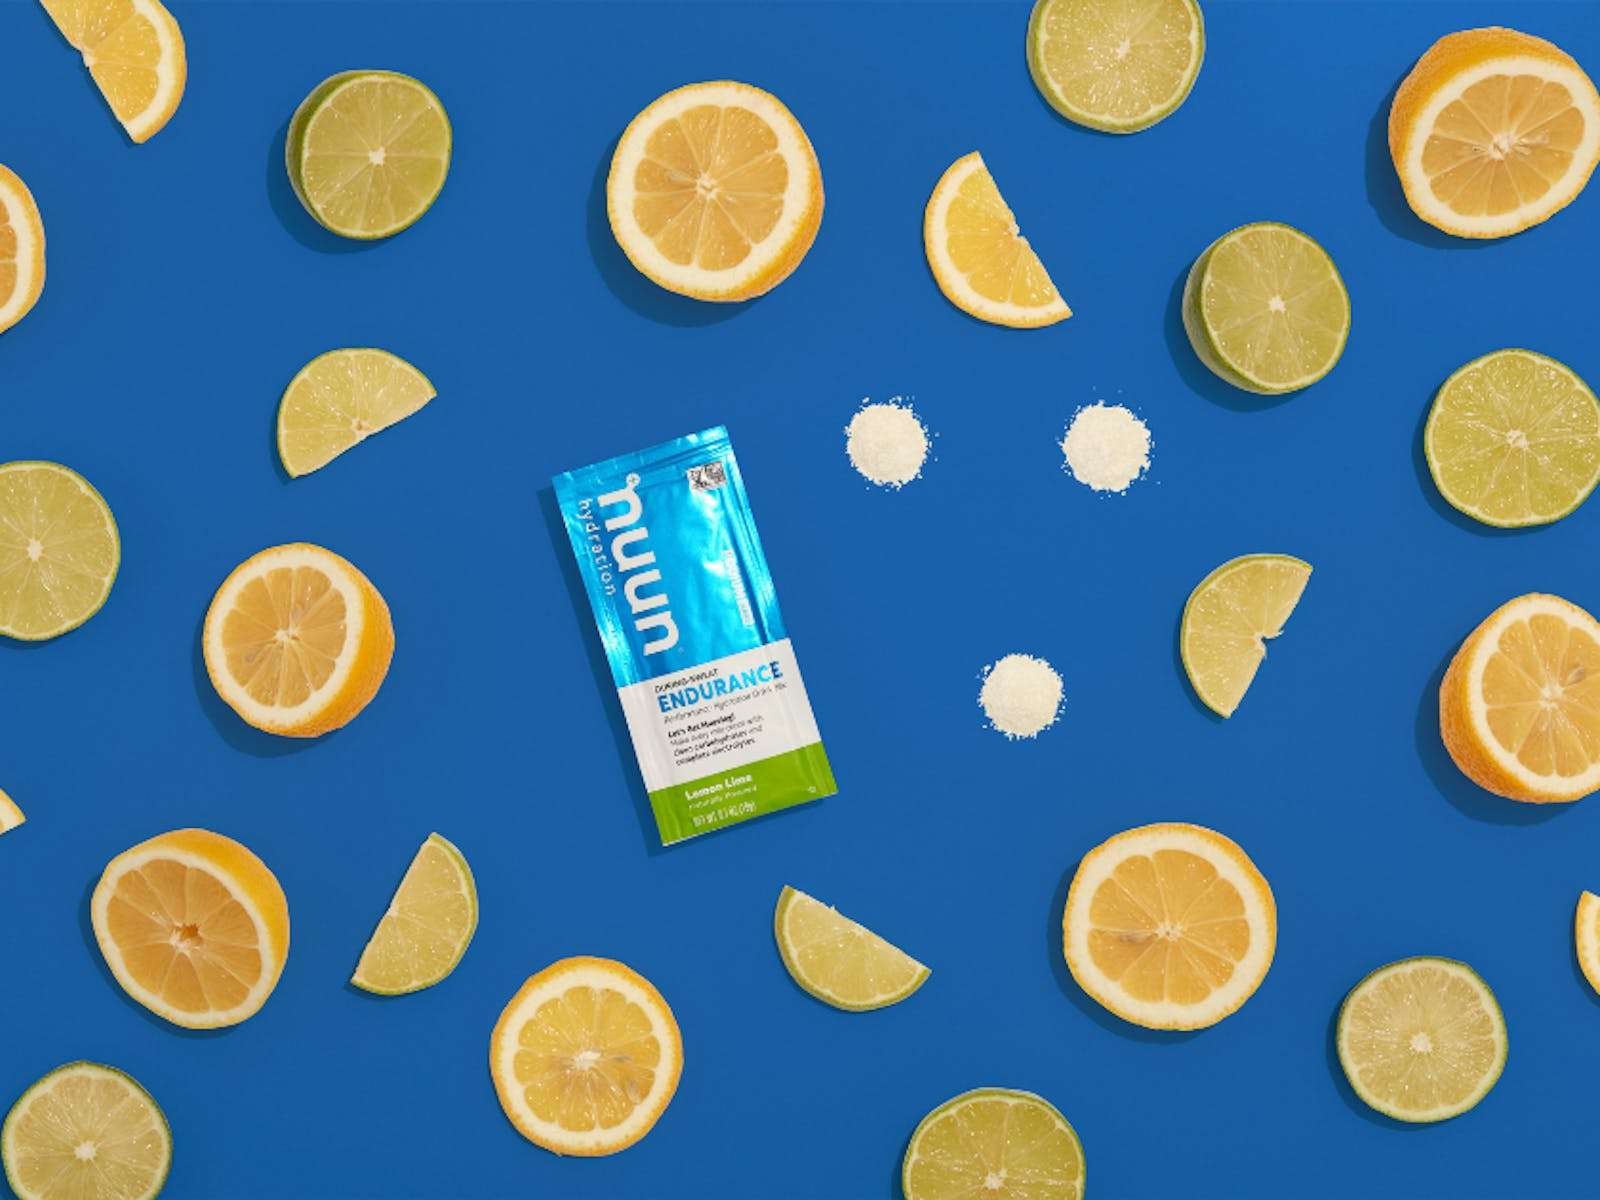 Packet of nuun against blue background full of limes and lemons